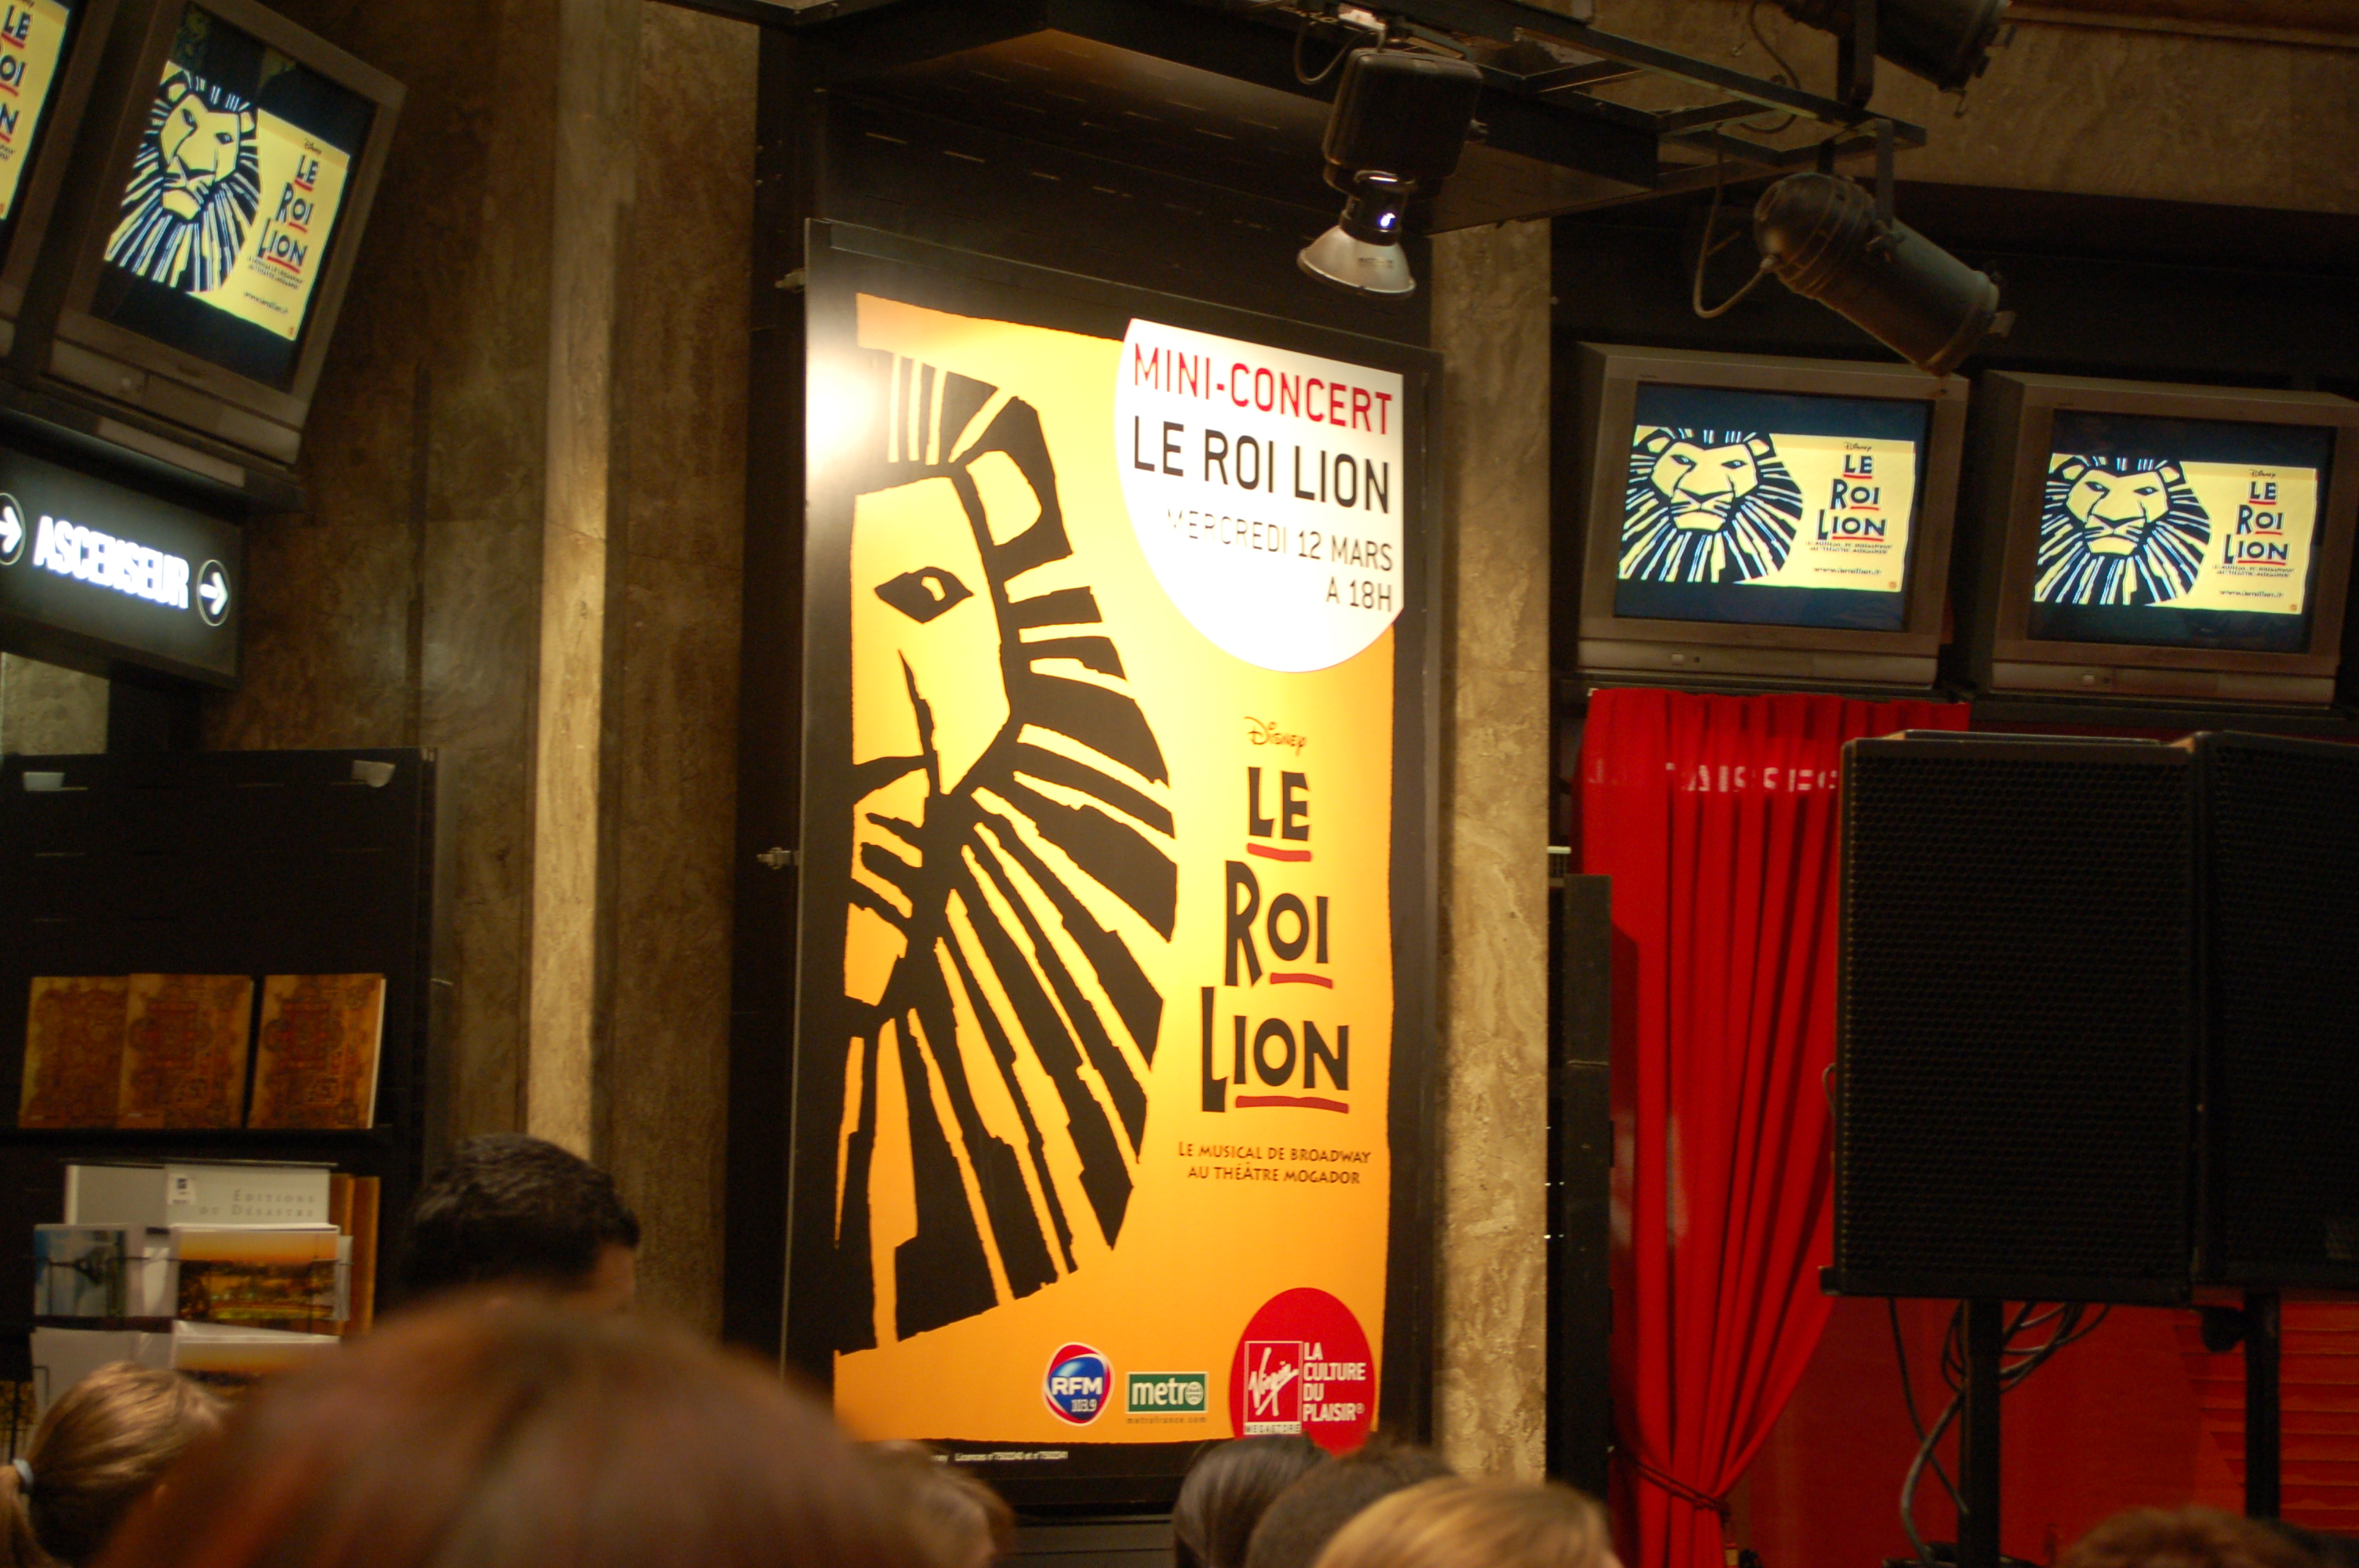 Le Roi Lion en mini-concert au Virgin Megastore